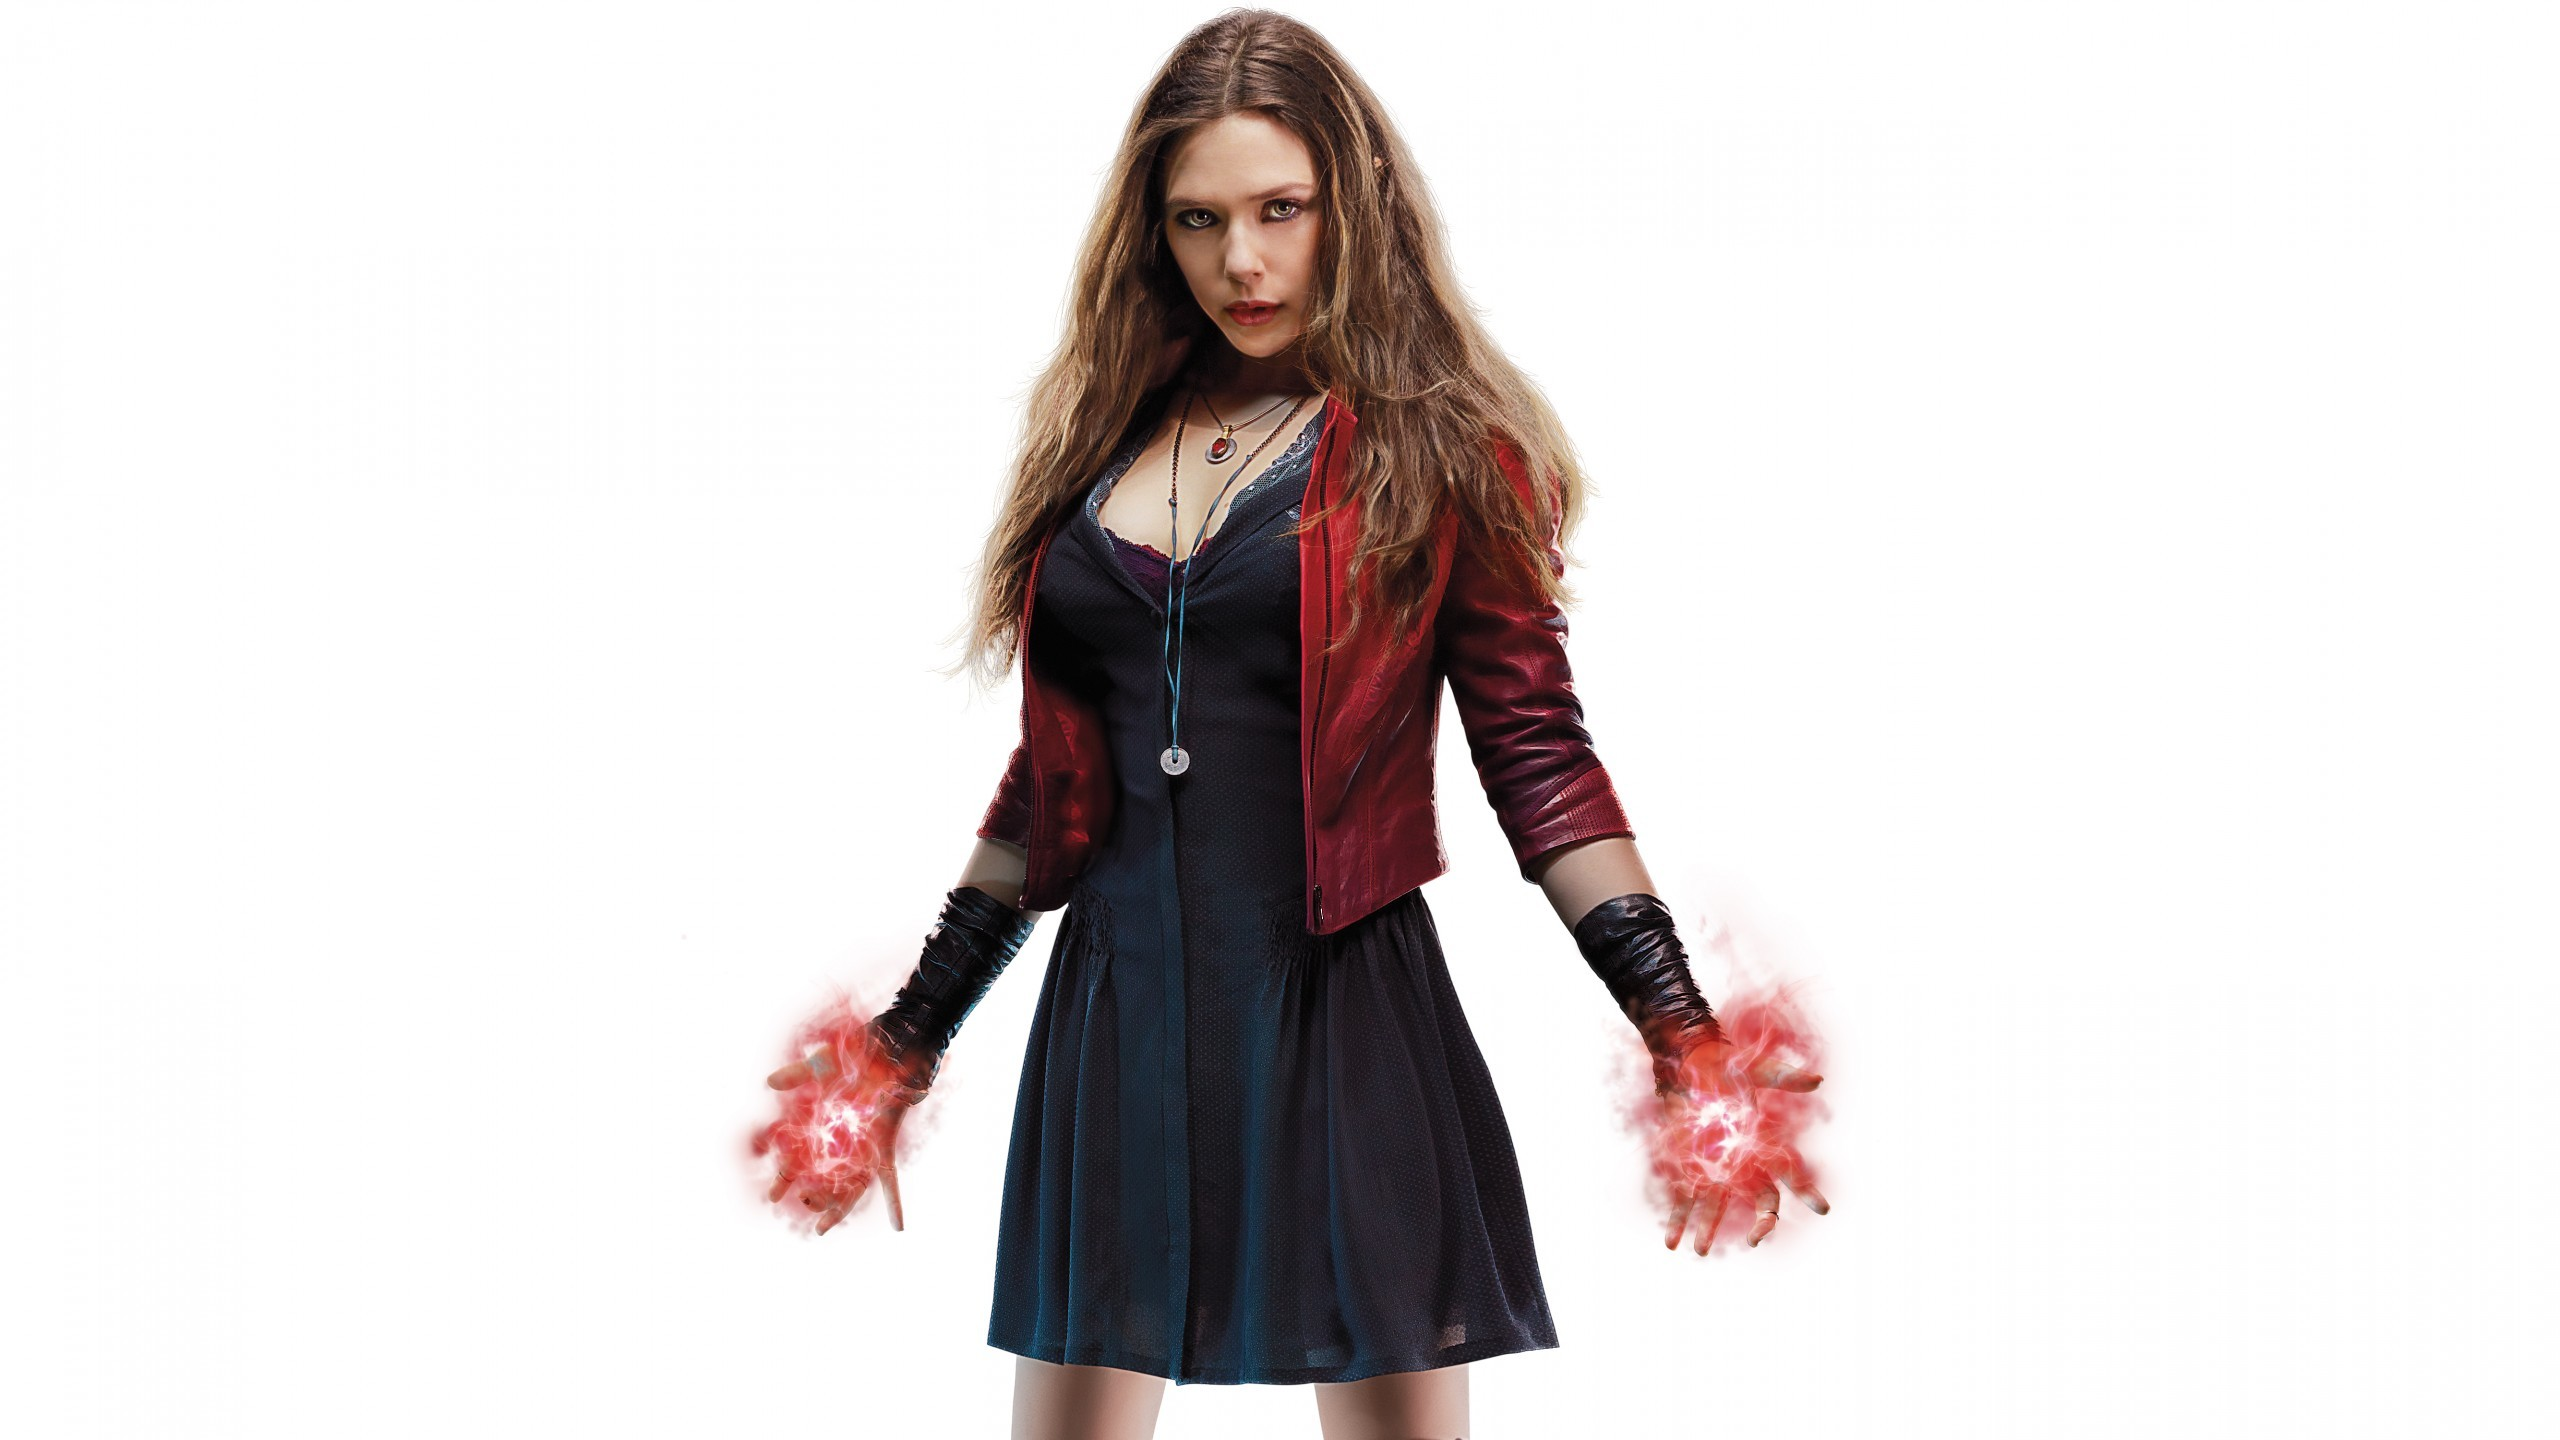 Movies / Scarlet Witch Wallpaper